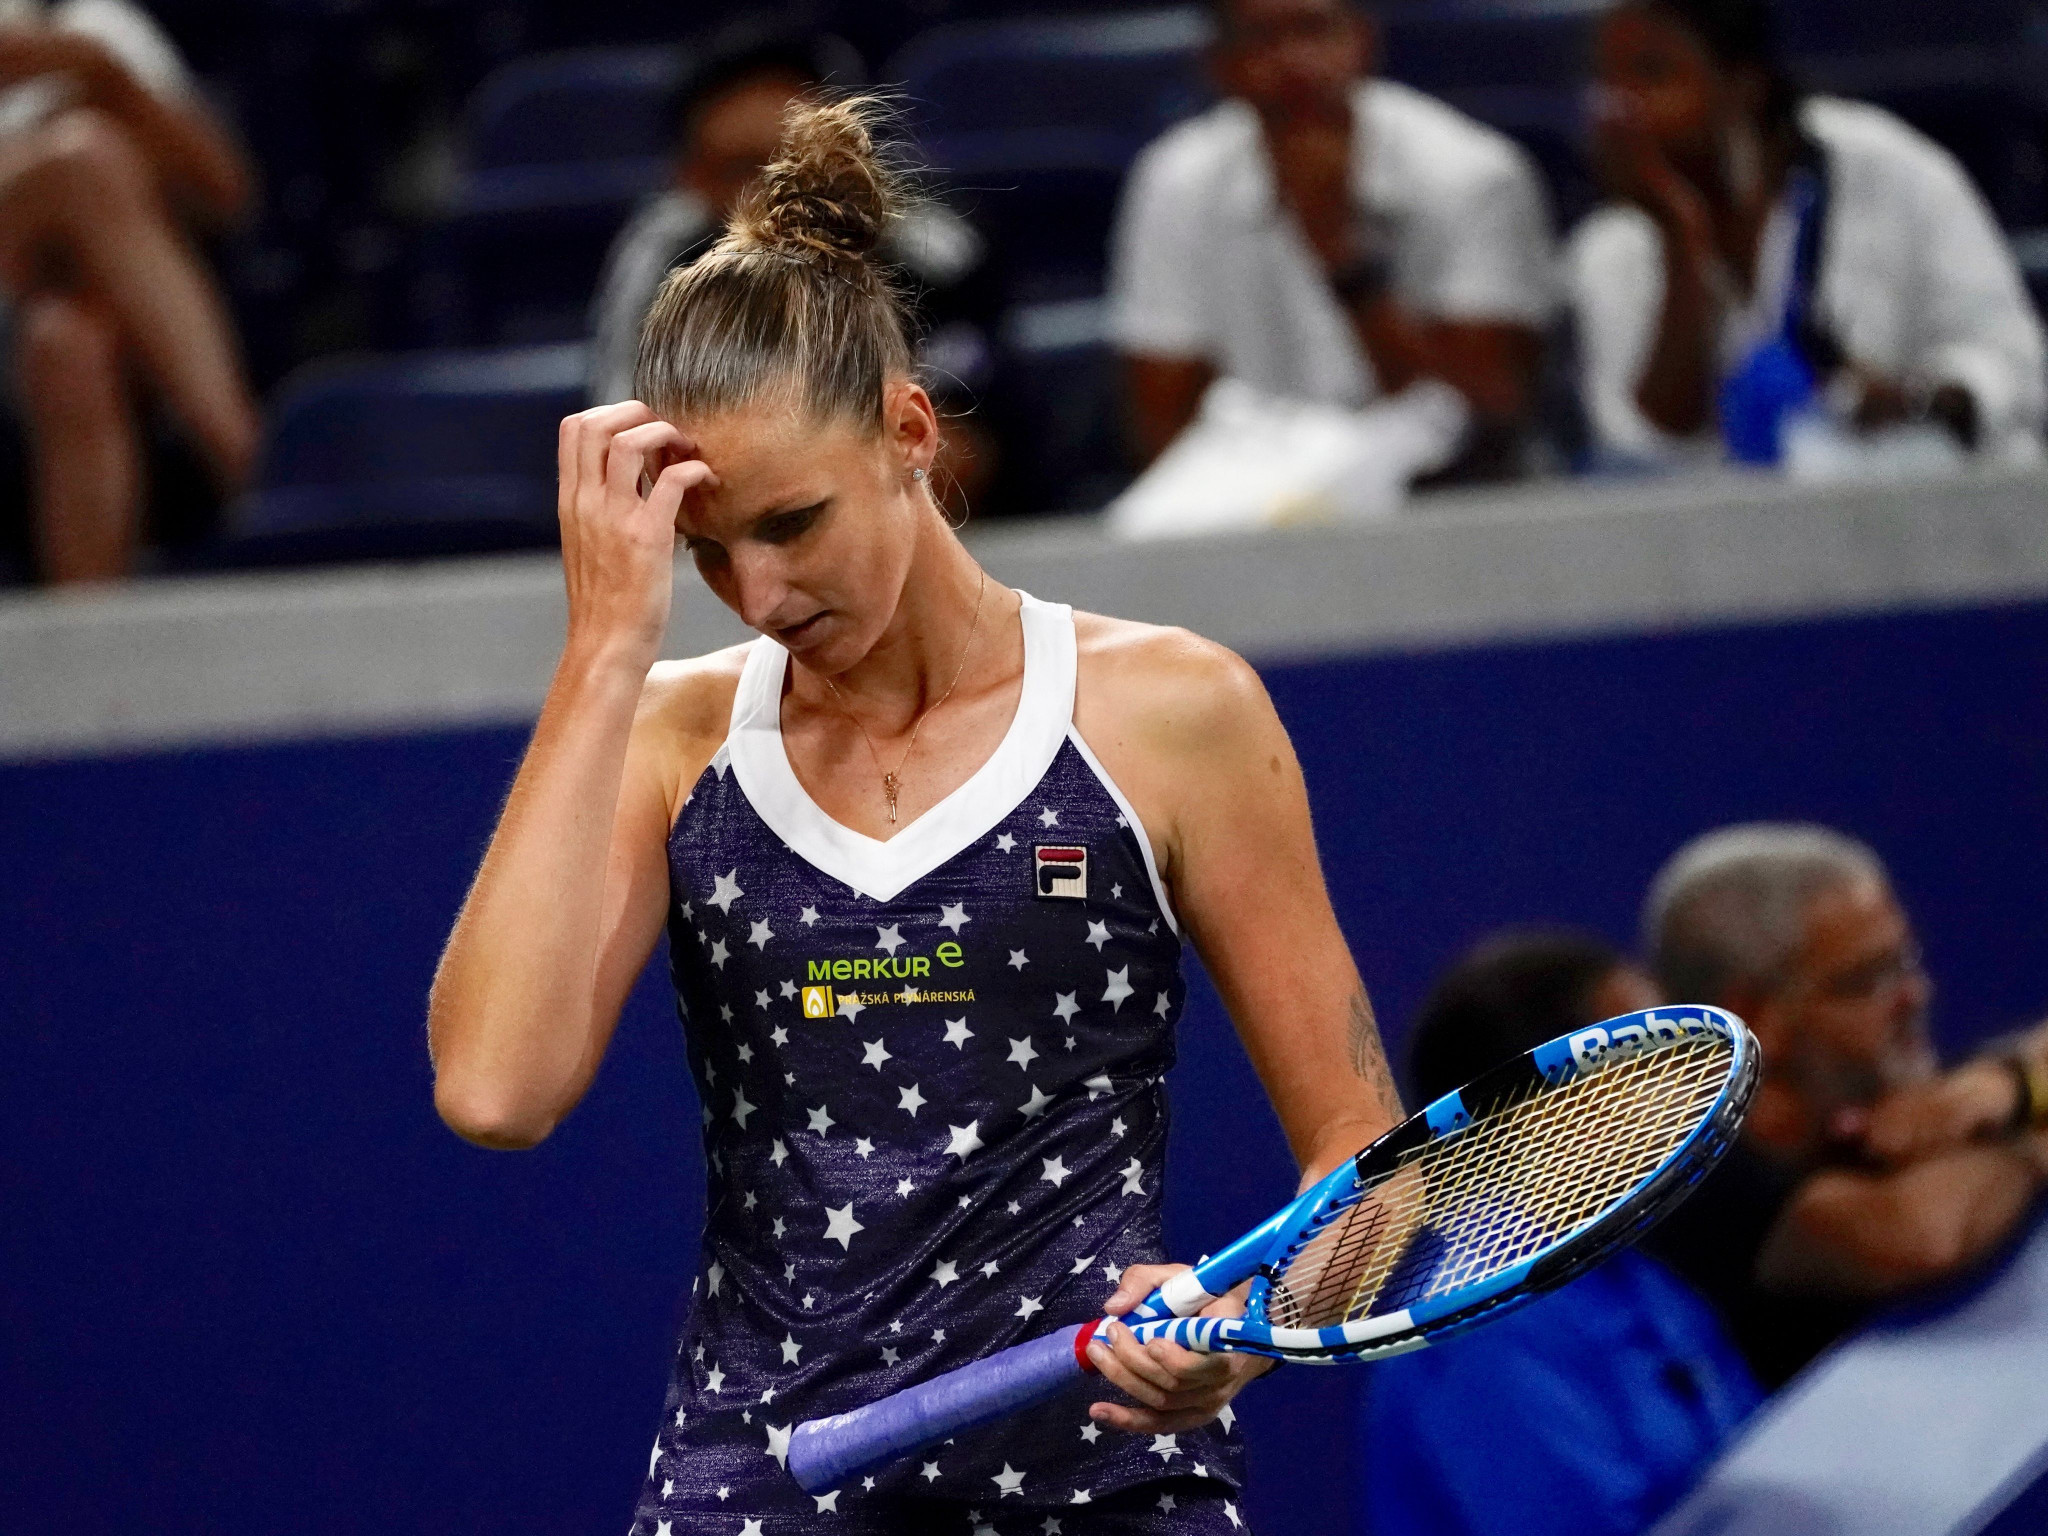 Plíšková knocked out of Kremlin Cup in shock defeat but still qualifies for WTA Tour Finals